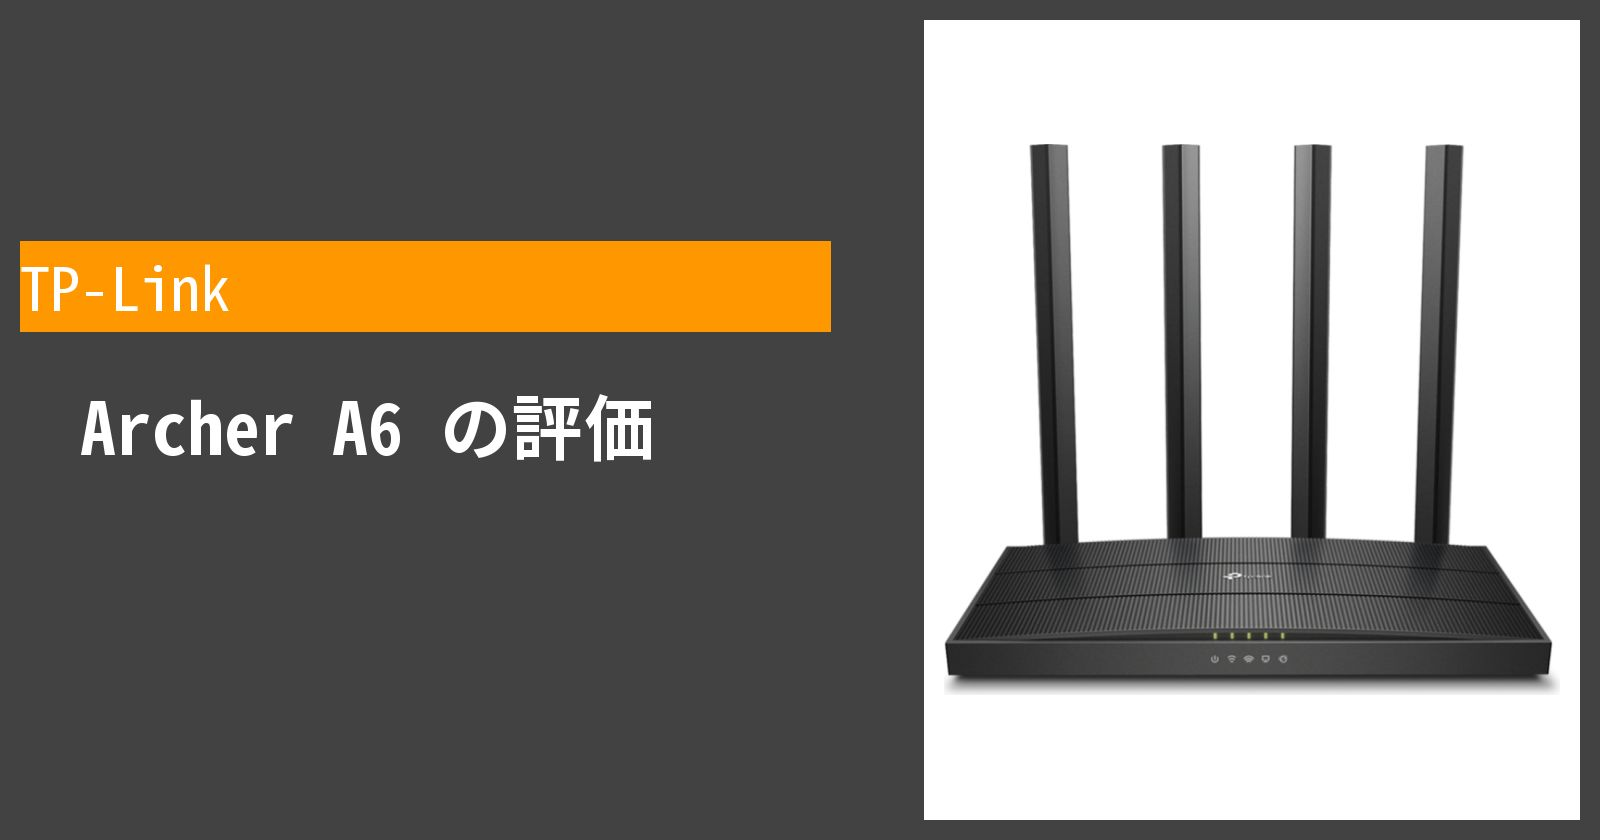 Archer A6を徹底評価